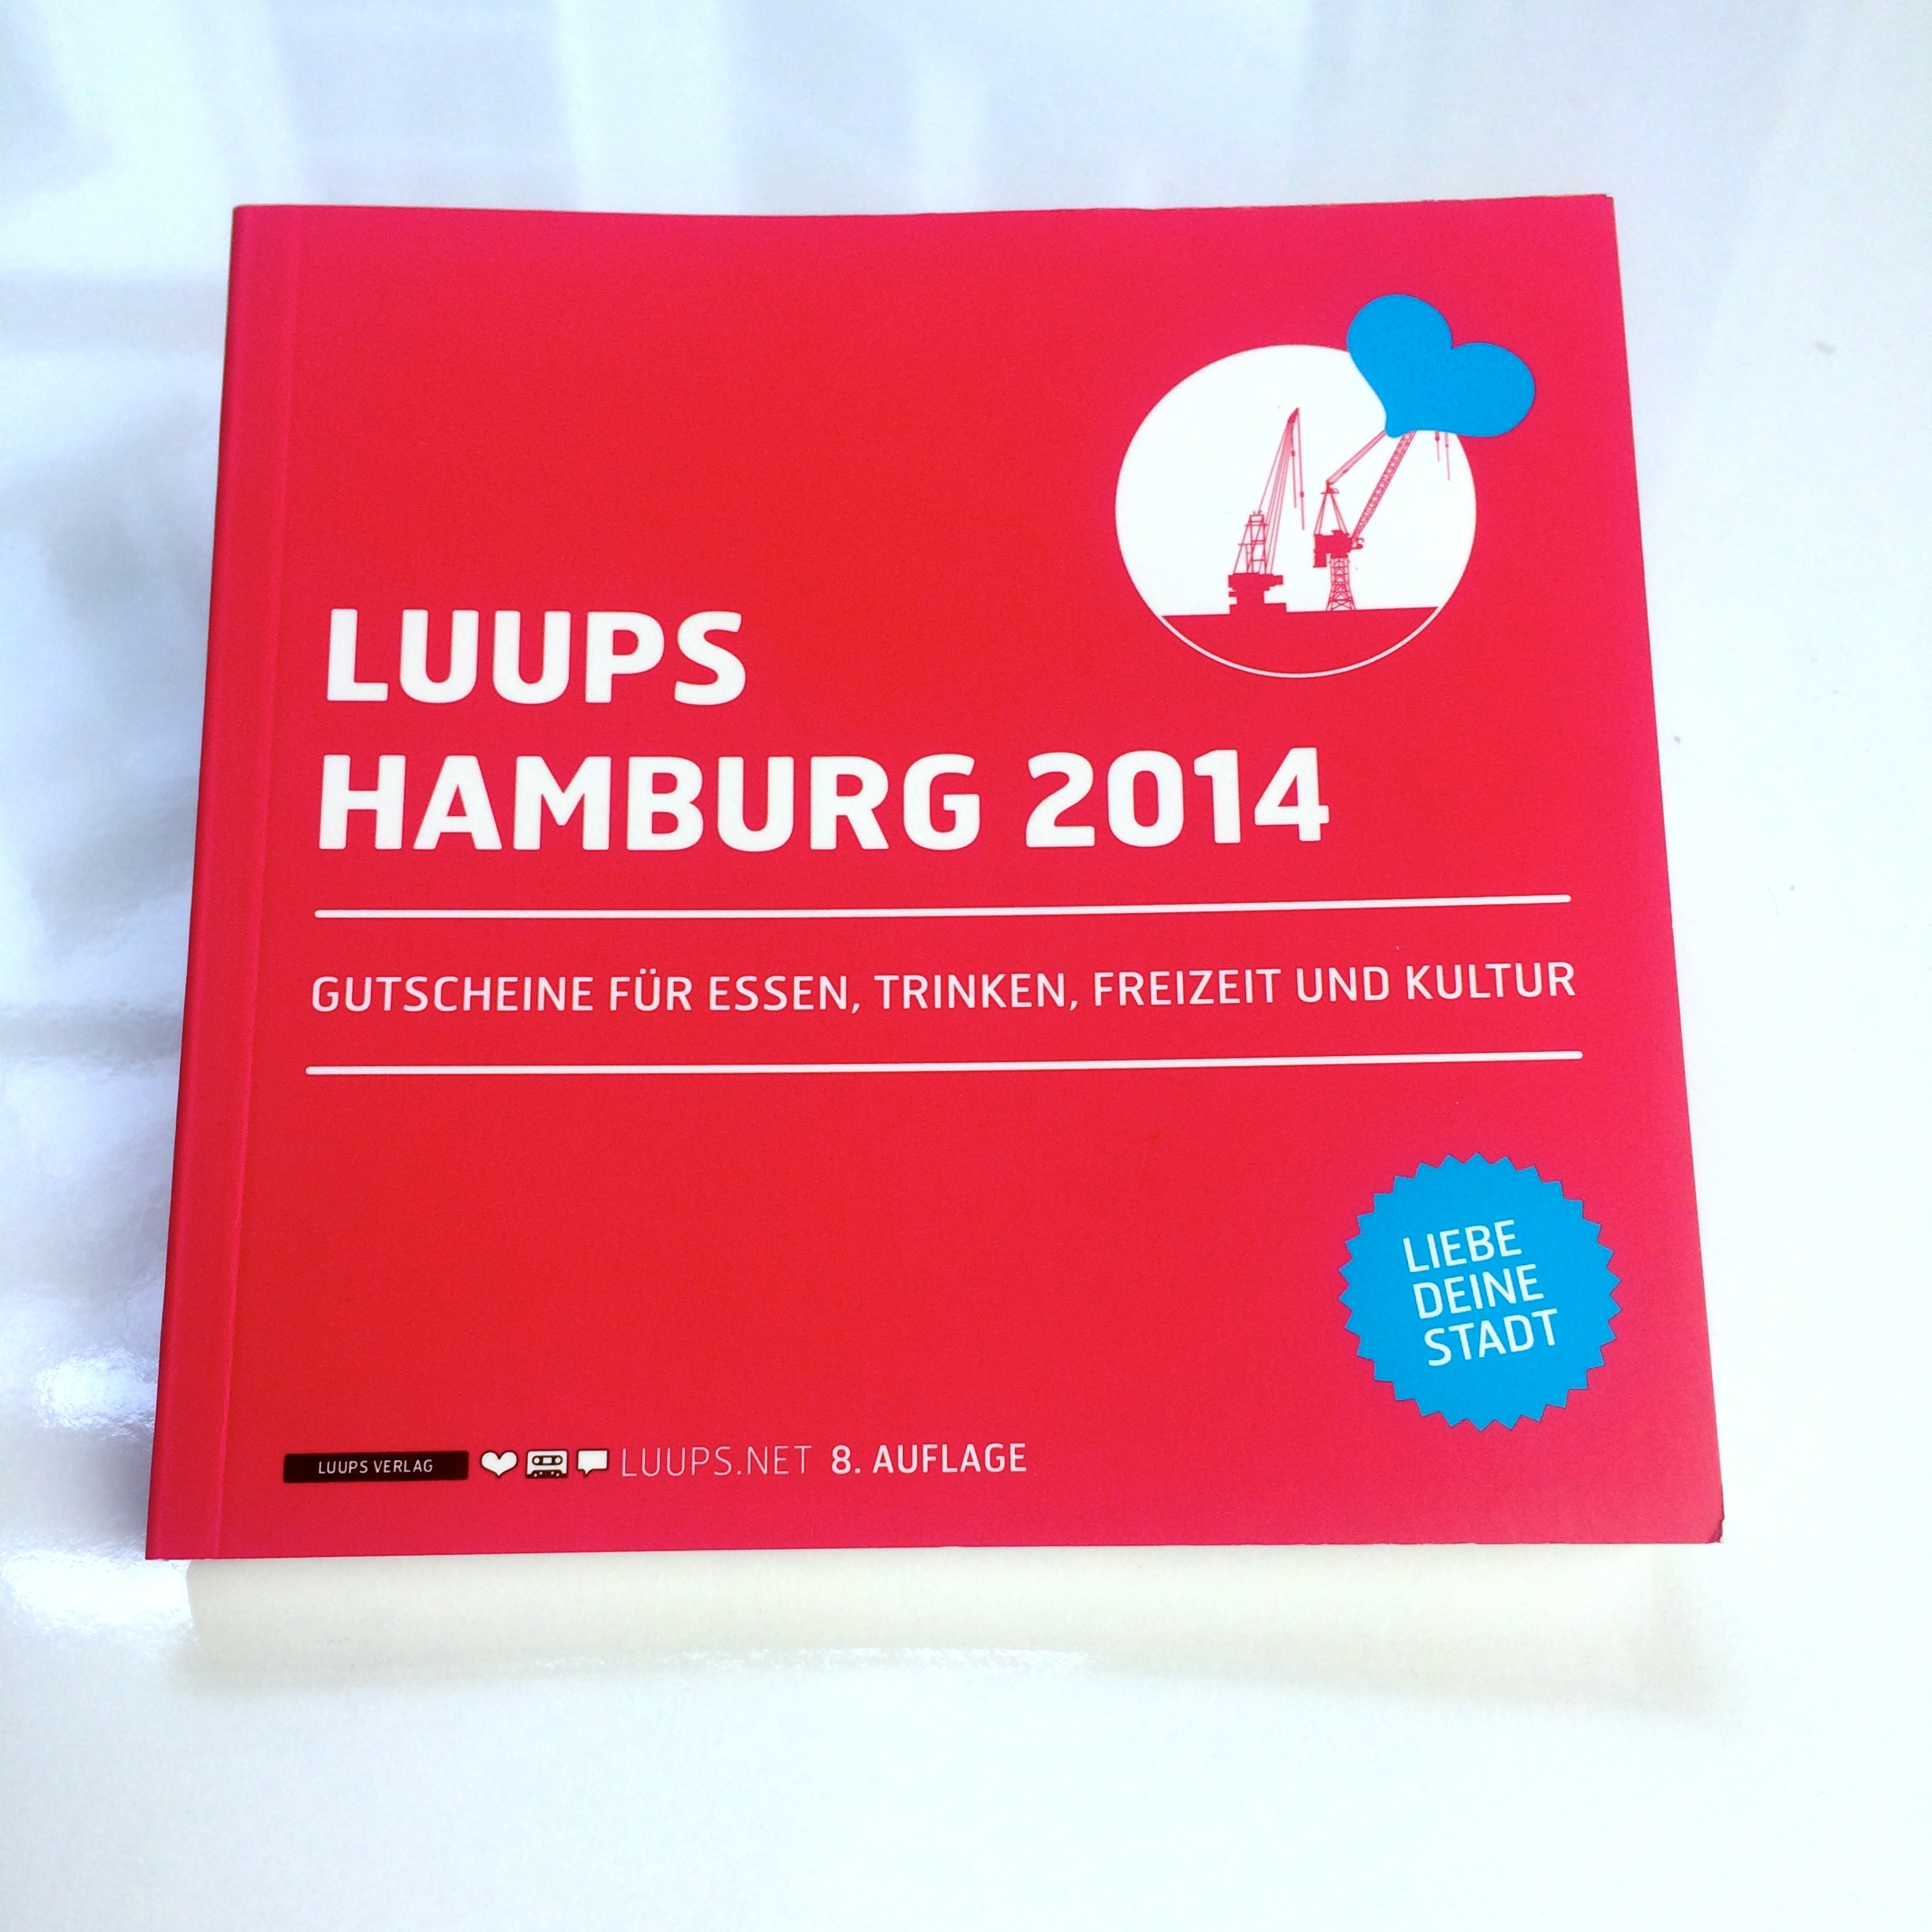 luups hamburg 2014 das gutscheinbuch. Black Bedroom Furniture Sets. Home Design Ideas